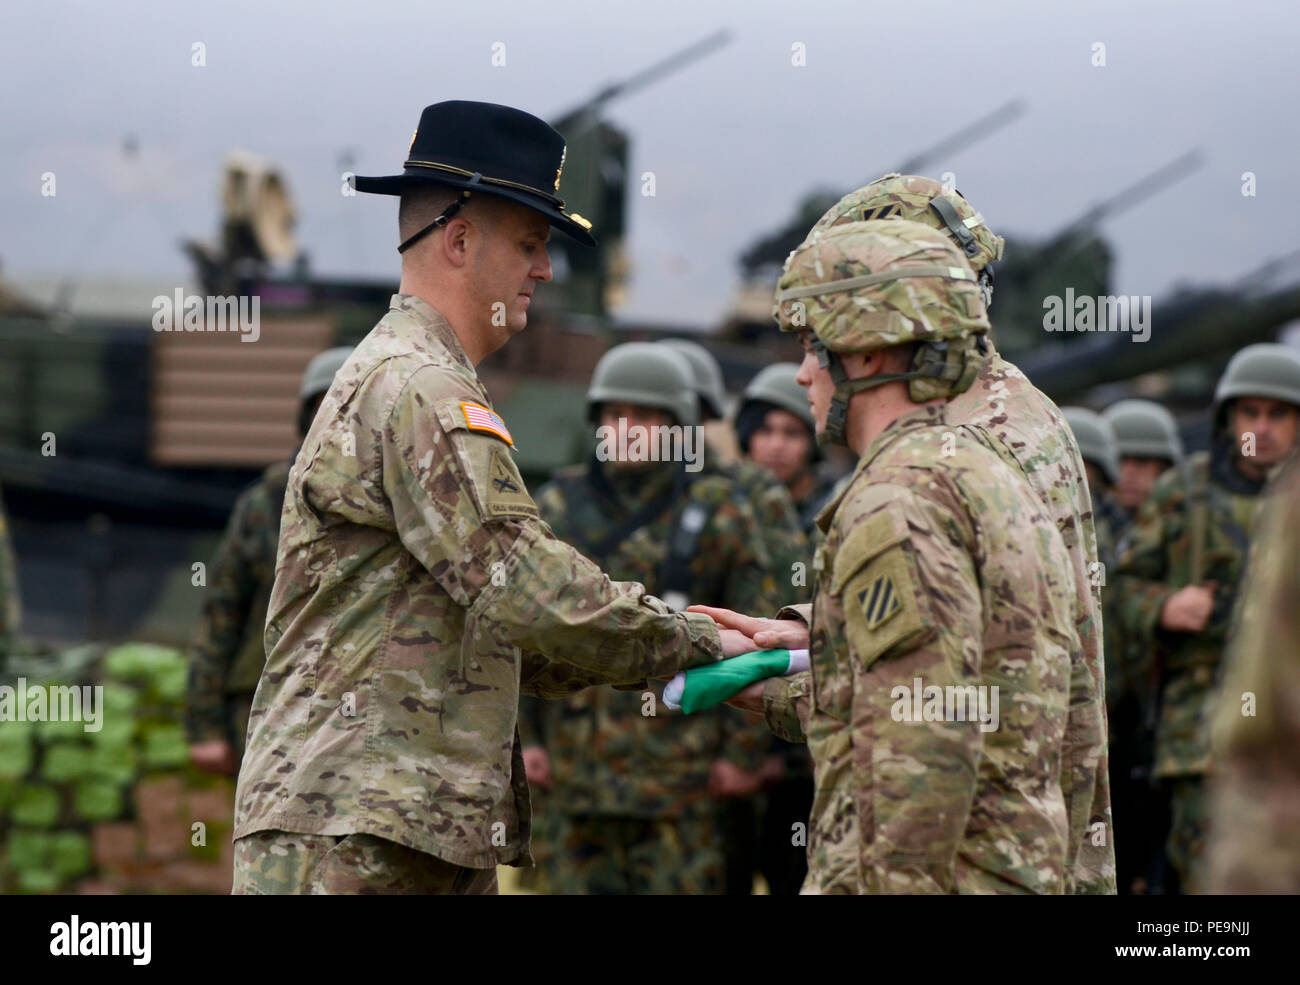 U.S. Army Lt. Col. Christopher Mahaffey (left), the commander of 5th Squadron, 7th Cavalry Regiment, 3rd Infantry Division, stationed at Fort Stewart, Ga., hands the Bulgarian flag to the U.S. Soldiers during the closing ceremony of Exercise Peace Sentinel at Novo Selo Training Center, Bulgaria, Nov. 24, 2015. (U.S. Army photo by Staff Sgt. Steven M. Colvin/Released) - Stock Image